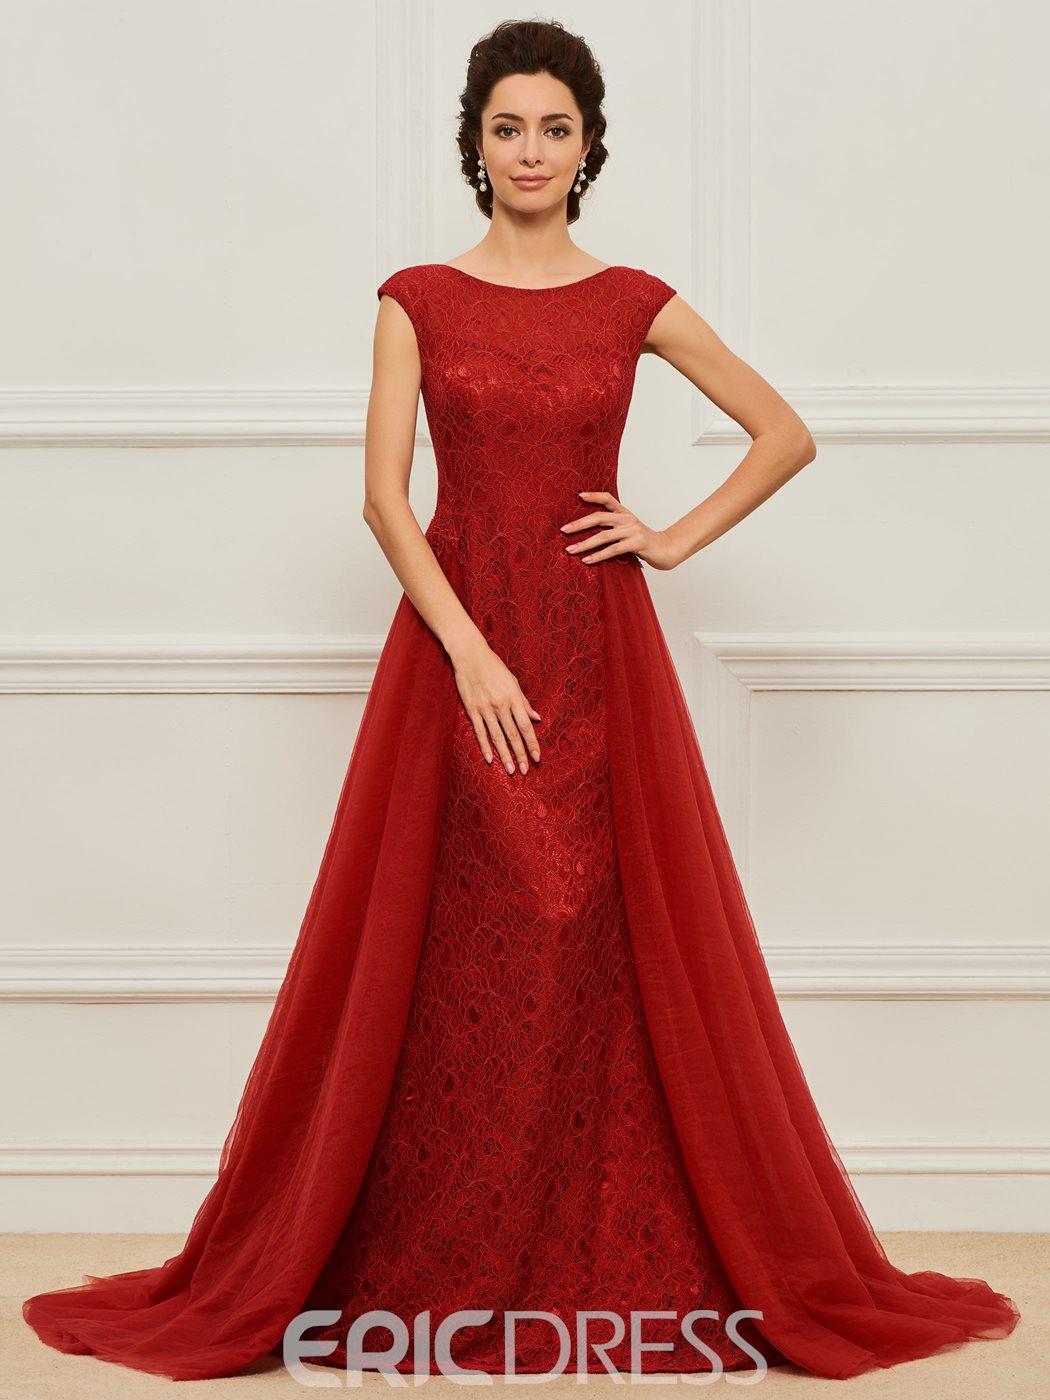 bed23945870 Ericdress Sheath Lace Long Mother of the Bride Dress 13136149 ...